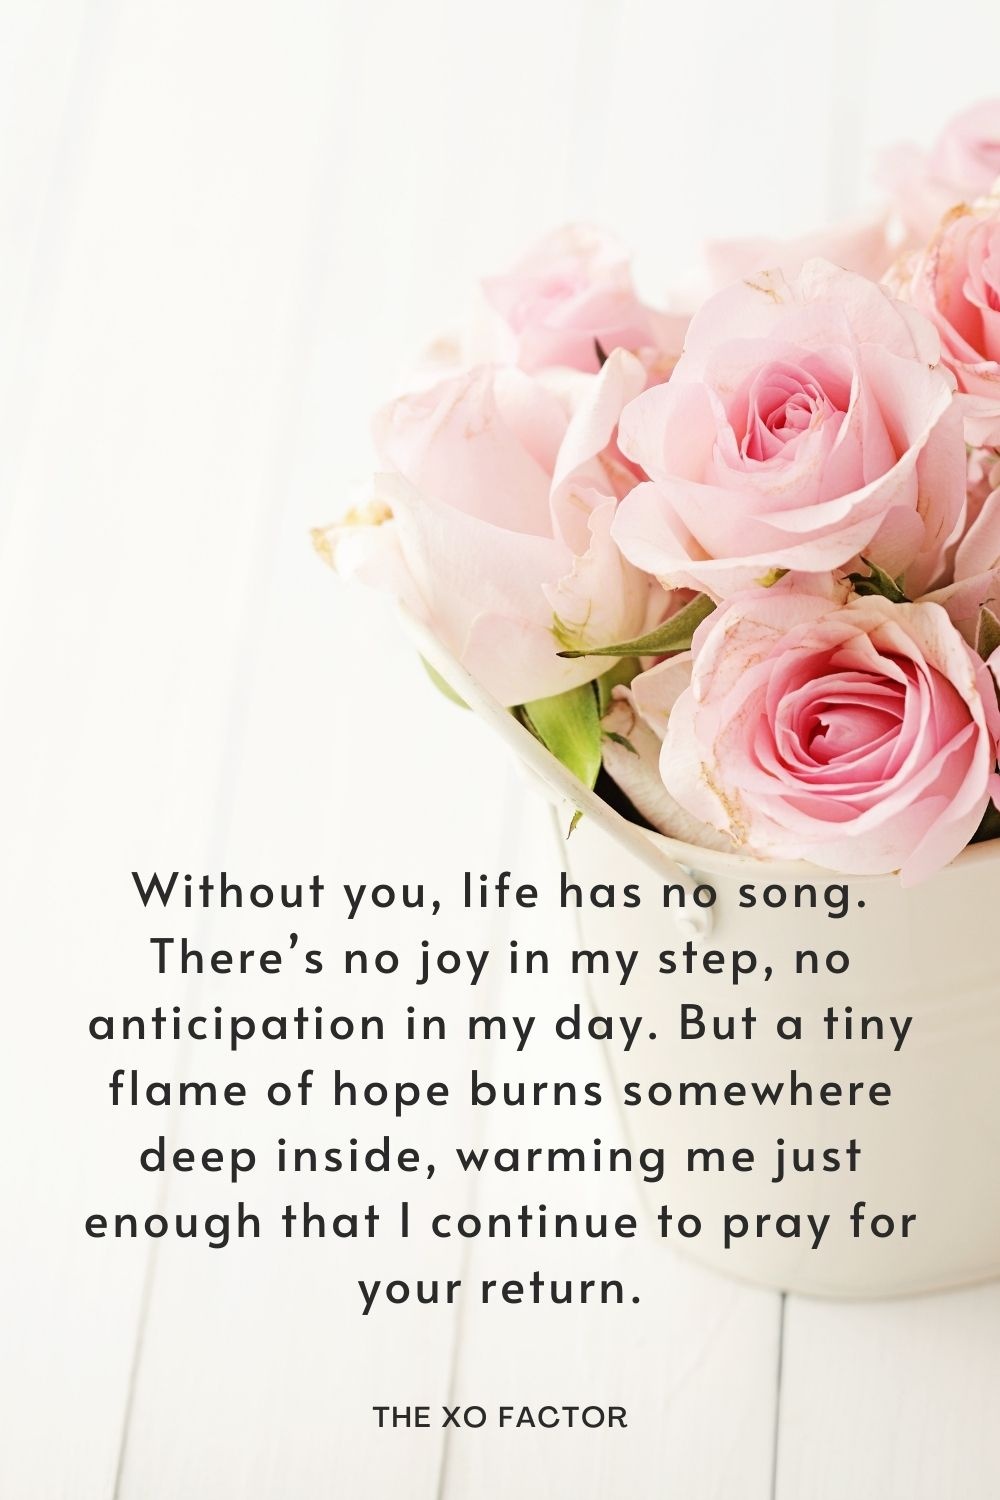 Without you, life has no song. There's no joy in my step, no anticipation in my day. But a tiny flame of hope burns somewhere deep inside, warming me just enough that I continue to pray for your return.